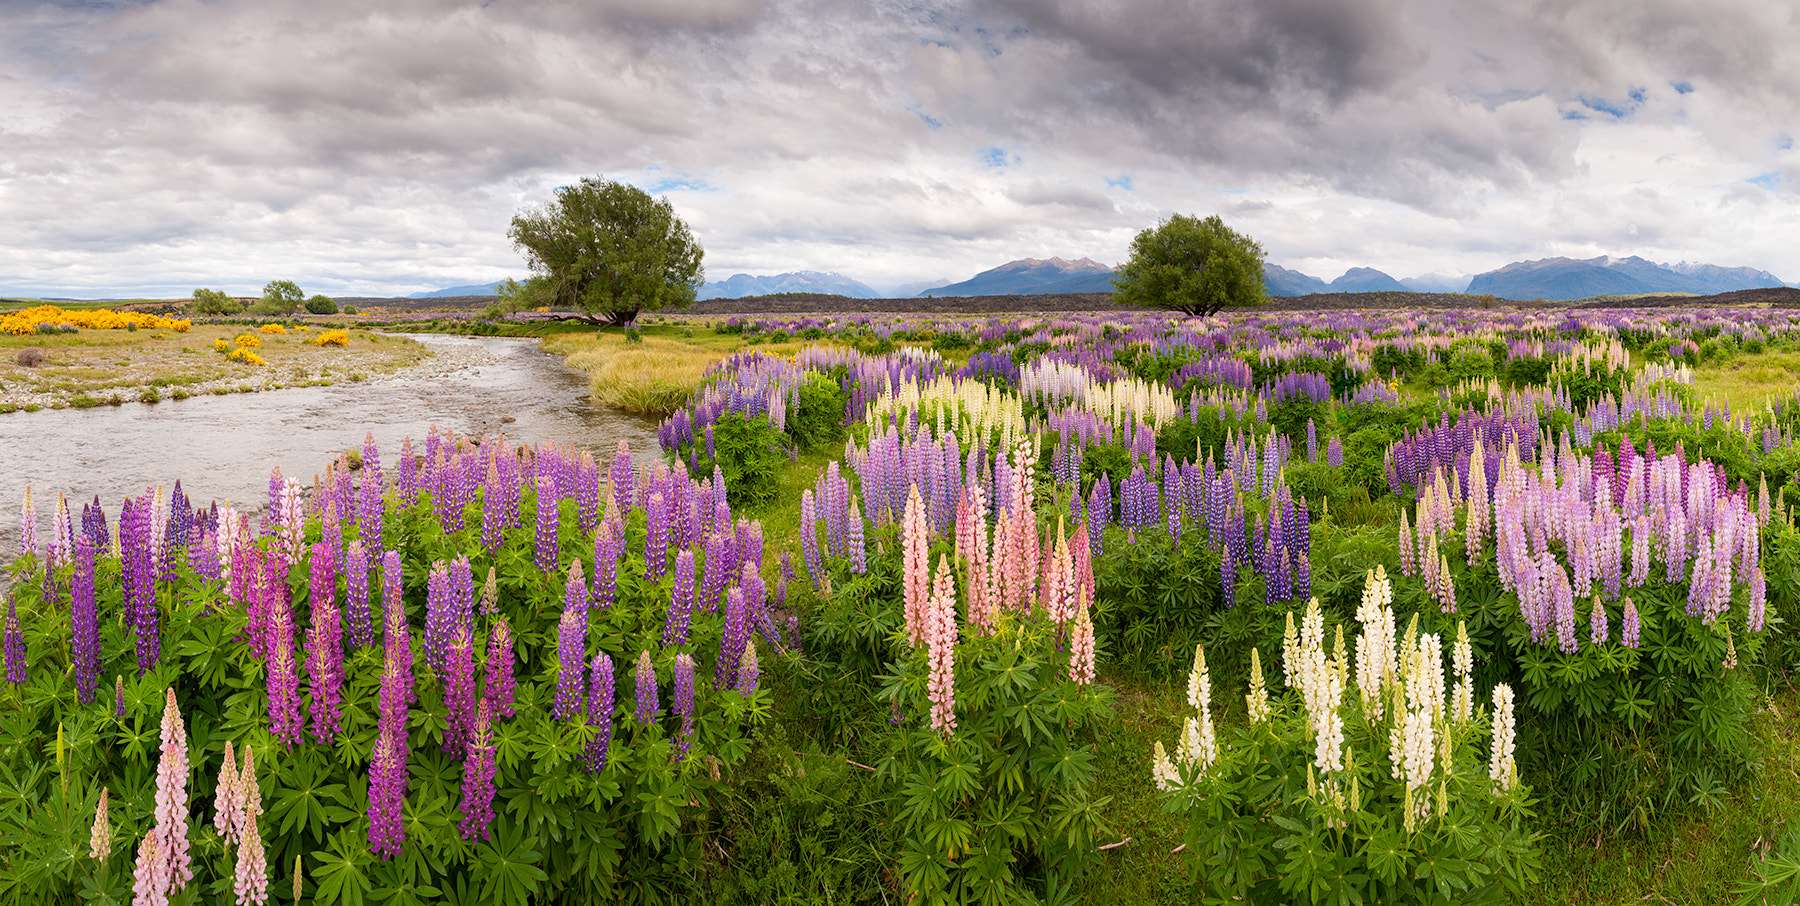 Photograph Lupines by Oleg Ershov on 500px